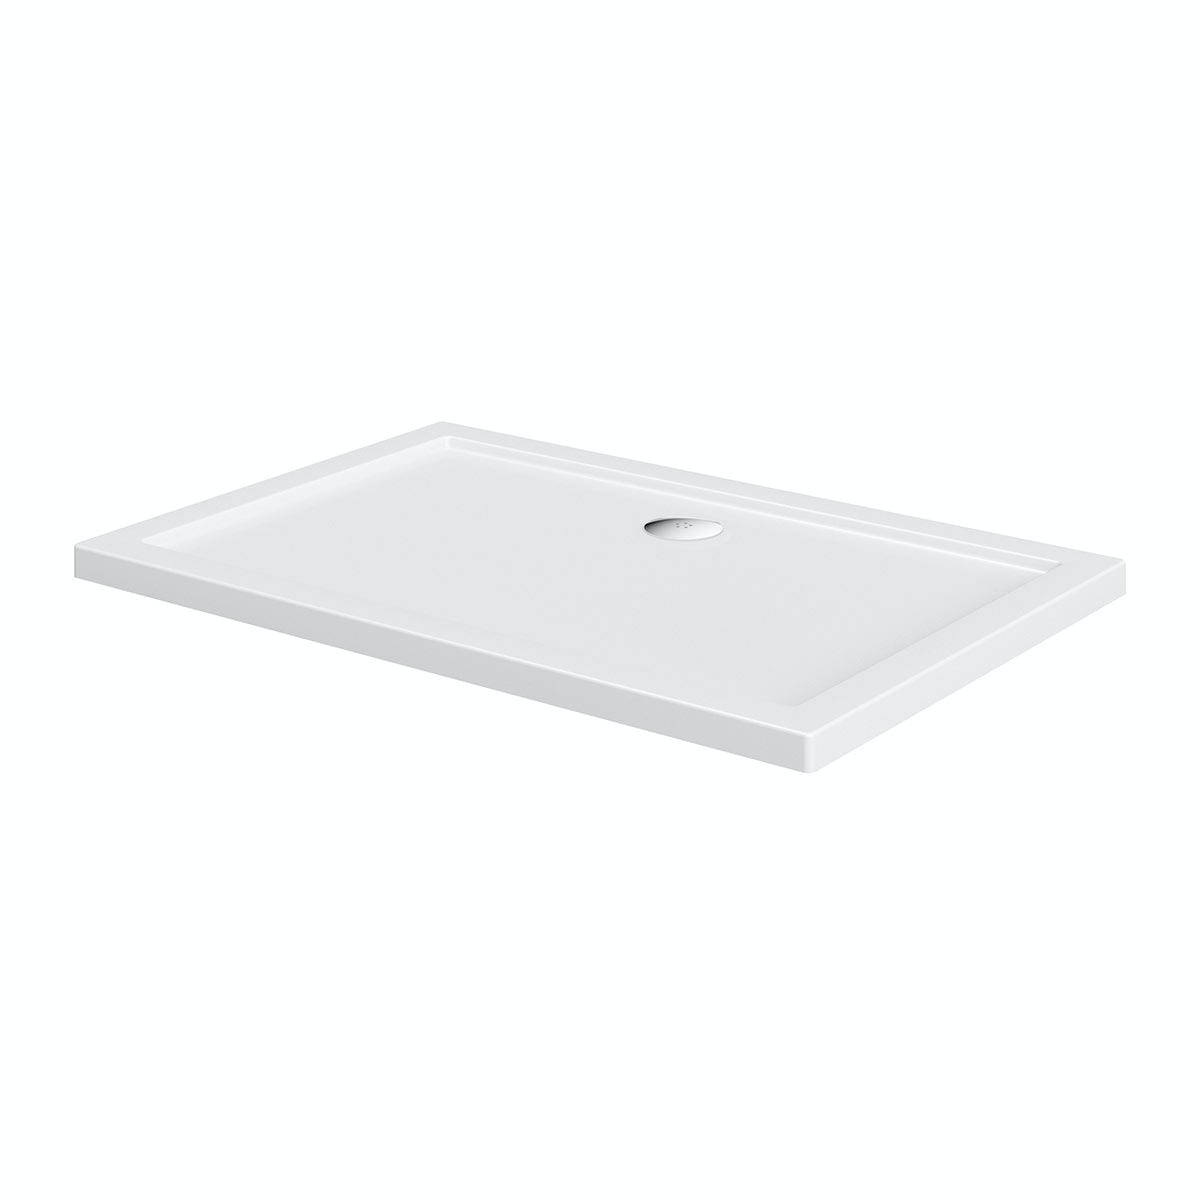 Orchard Rectangular stone shower tray 1000 x 800